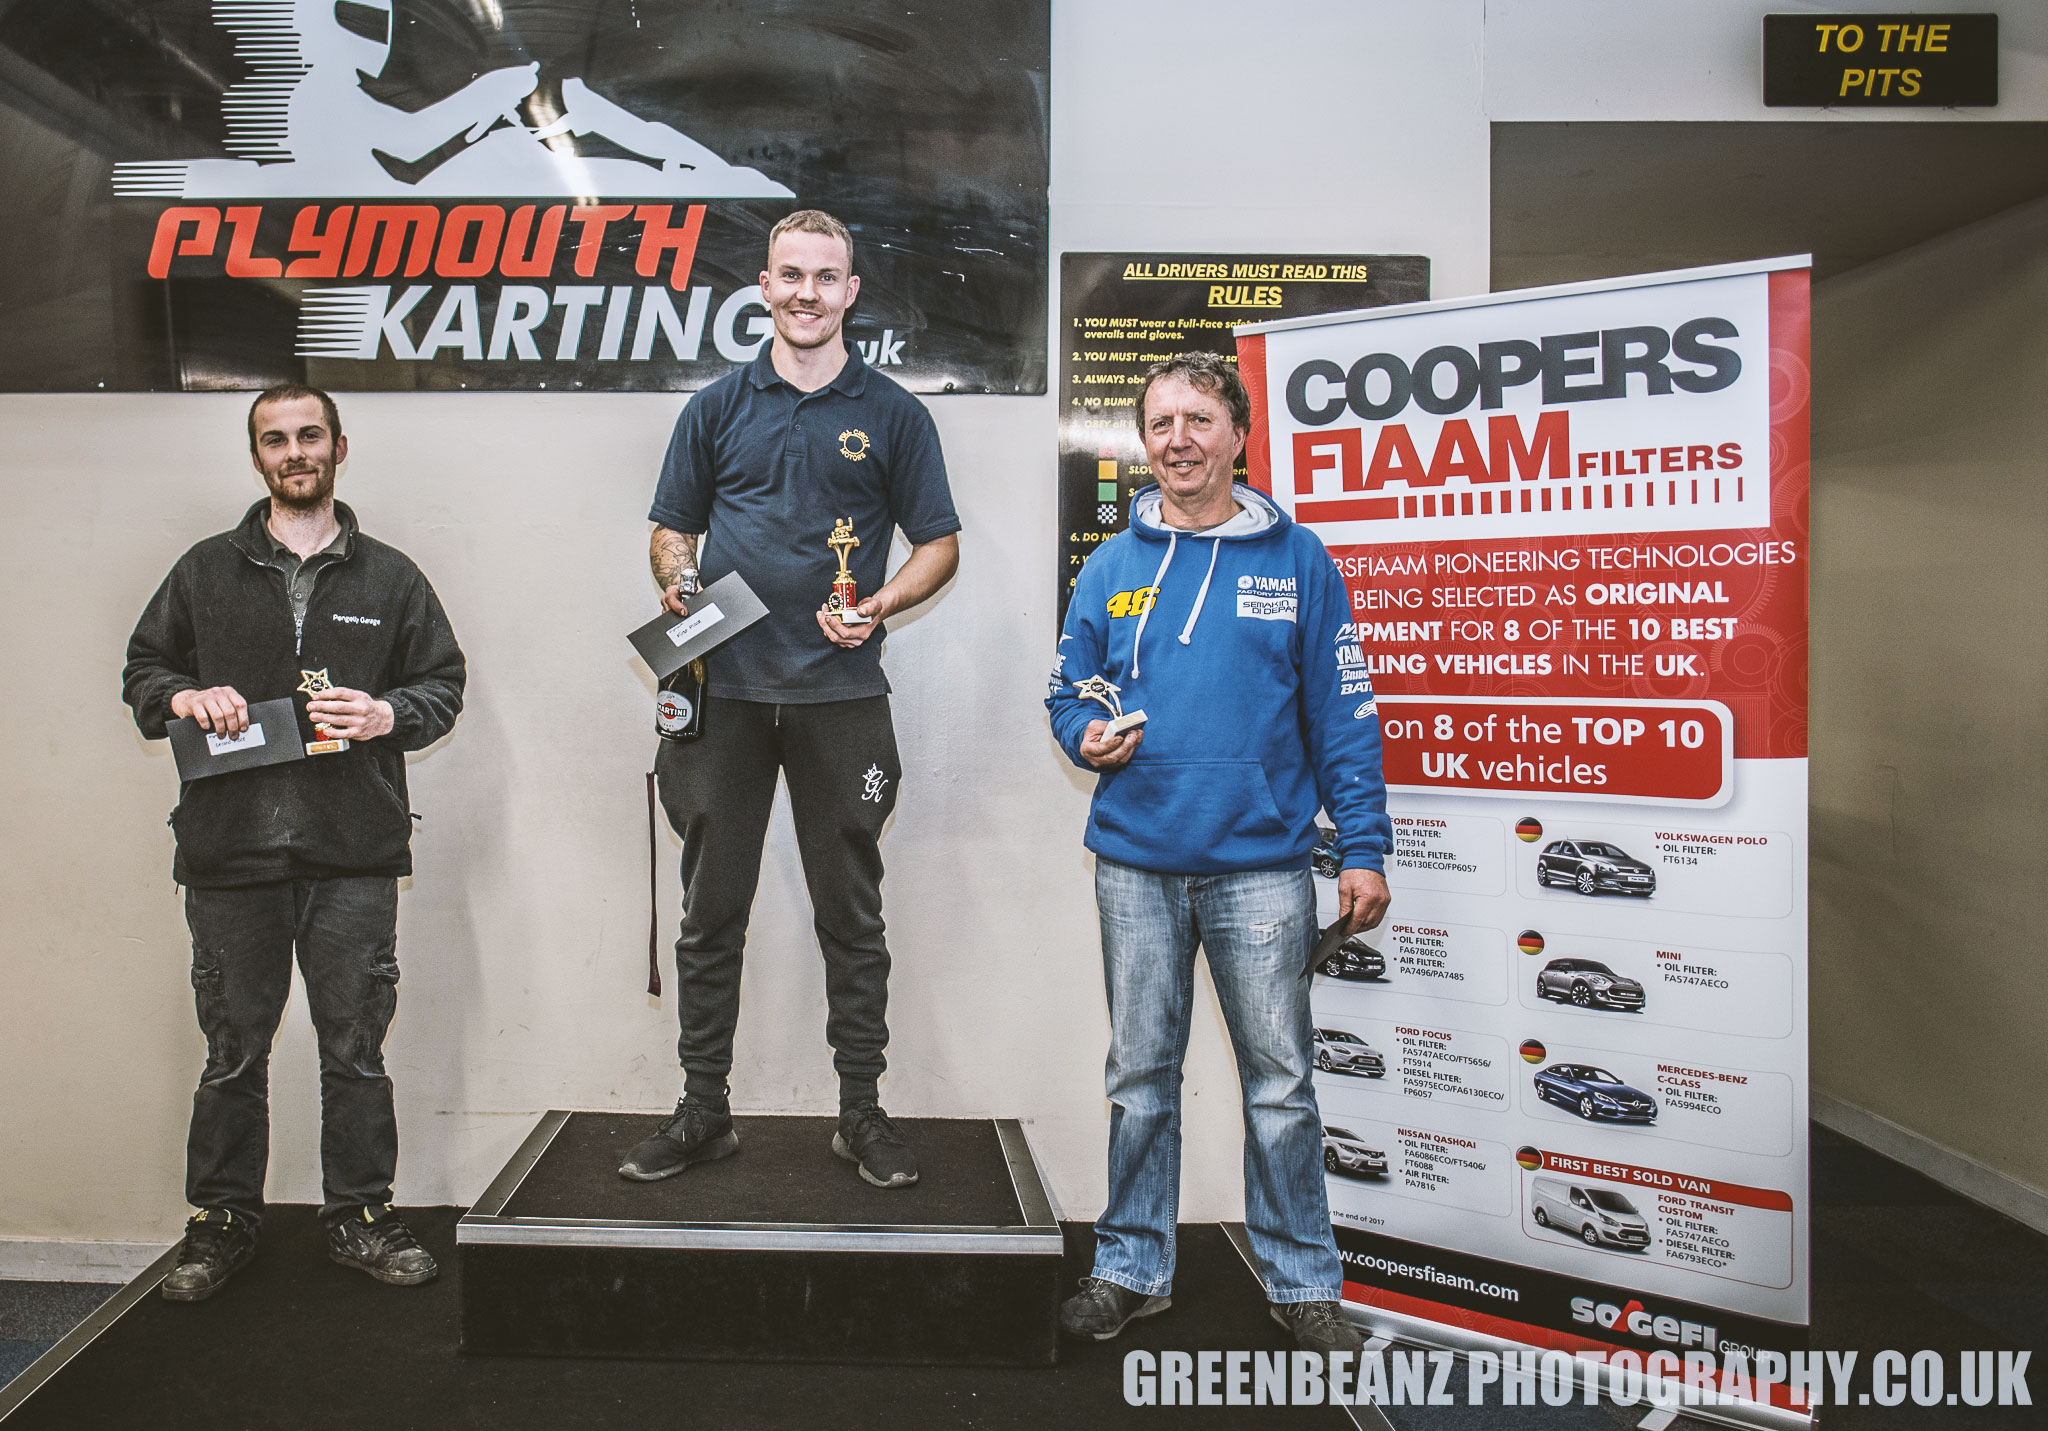 The Winners Podium at at teh Coopers Fiaam Plymouth Karting event